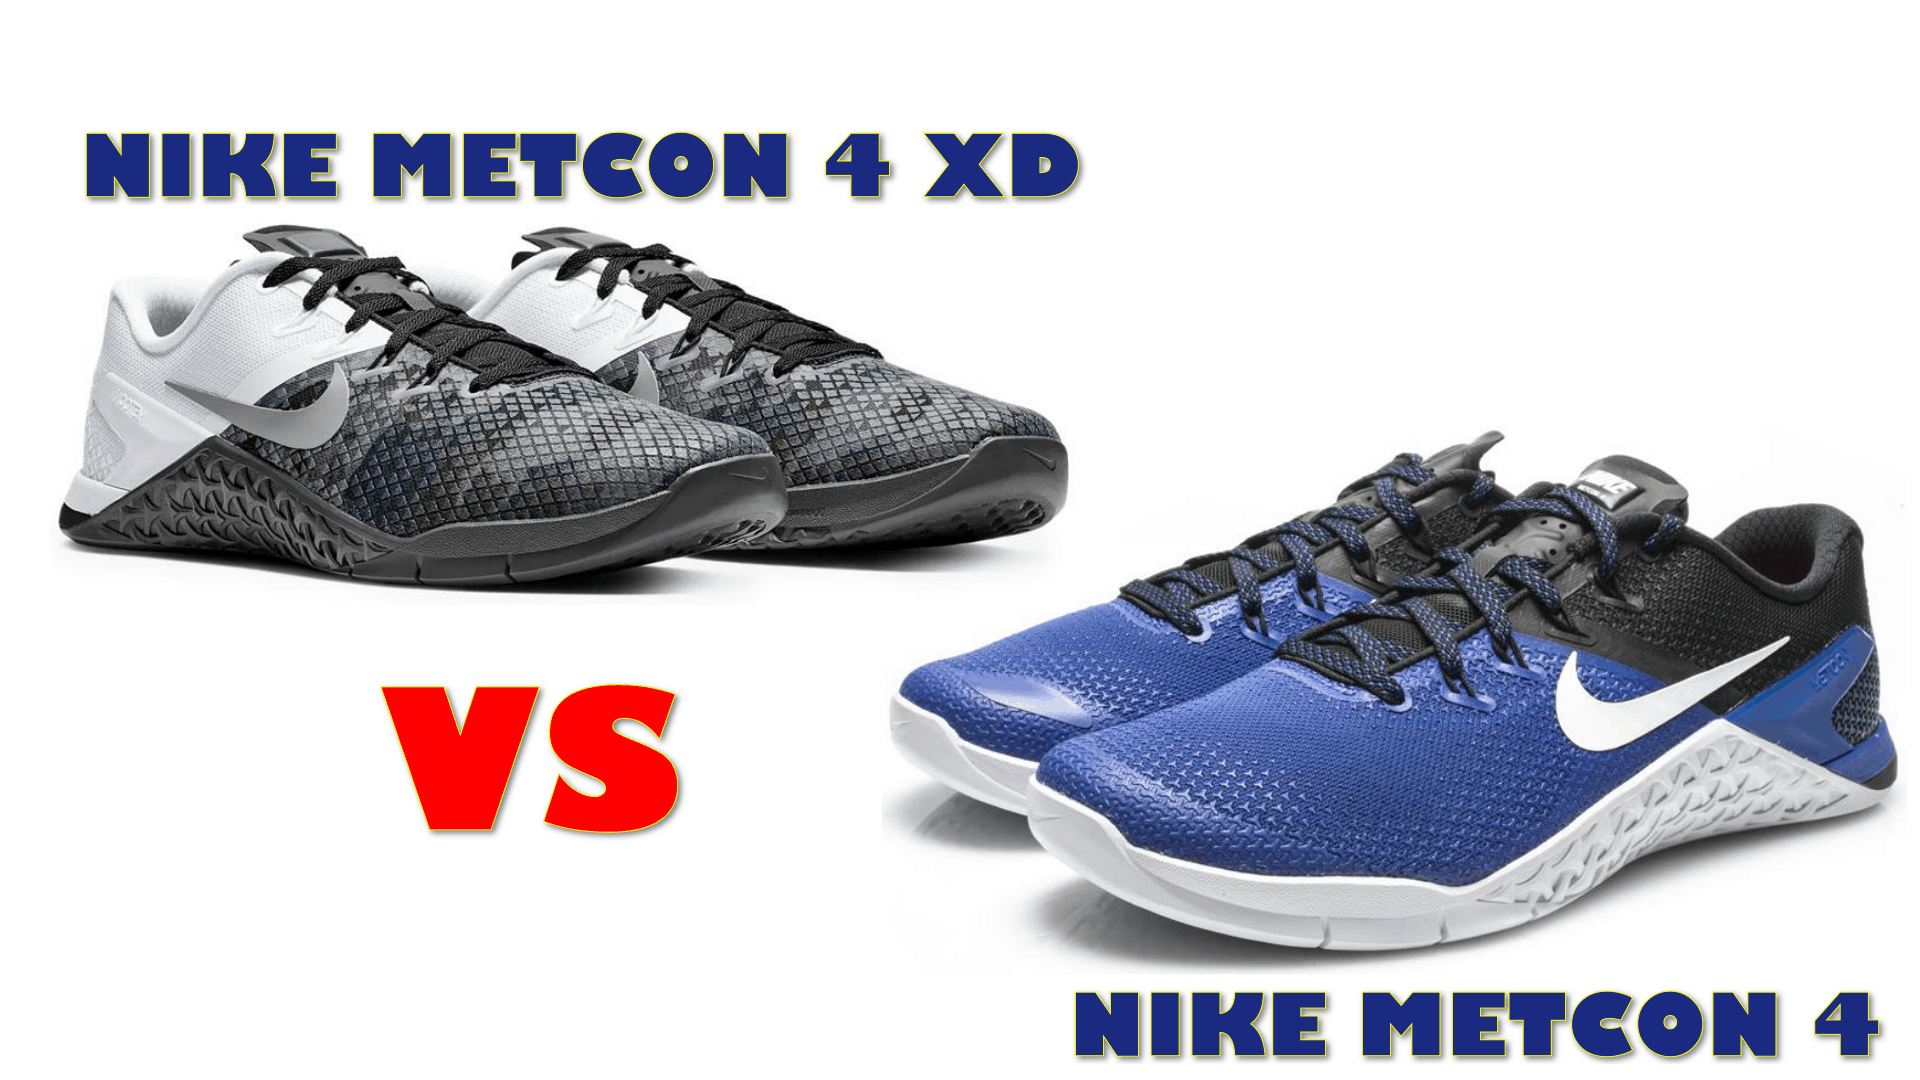 c85f26f548c7 Nike Metcon 4 XD vs Nike Metcon 4 (NEW FOR 2019!)